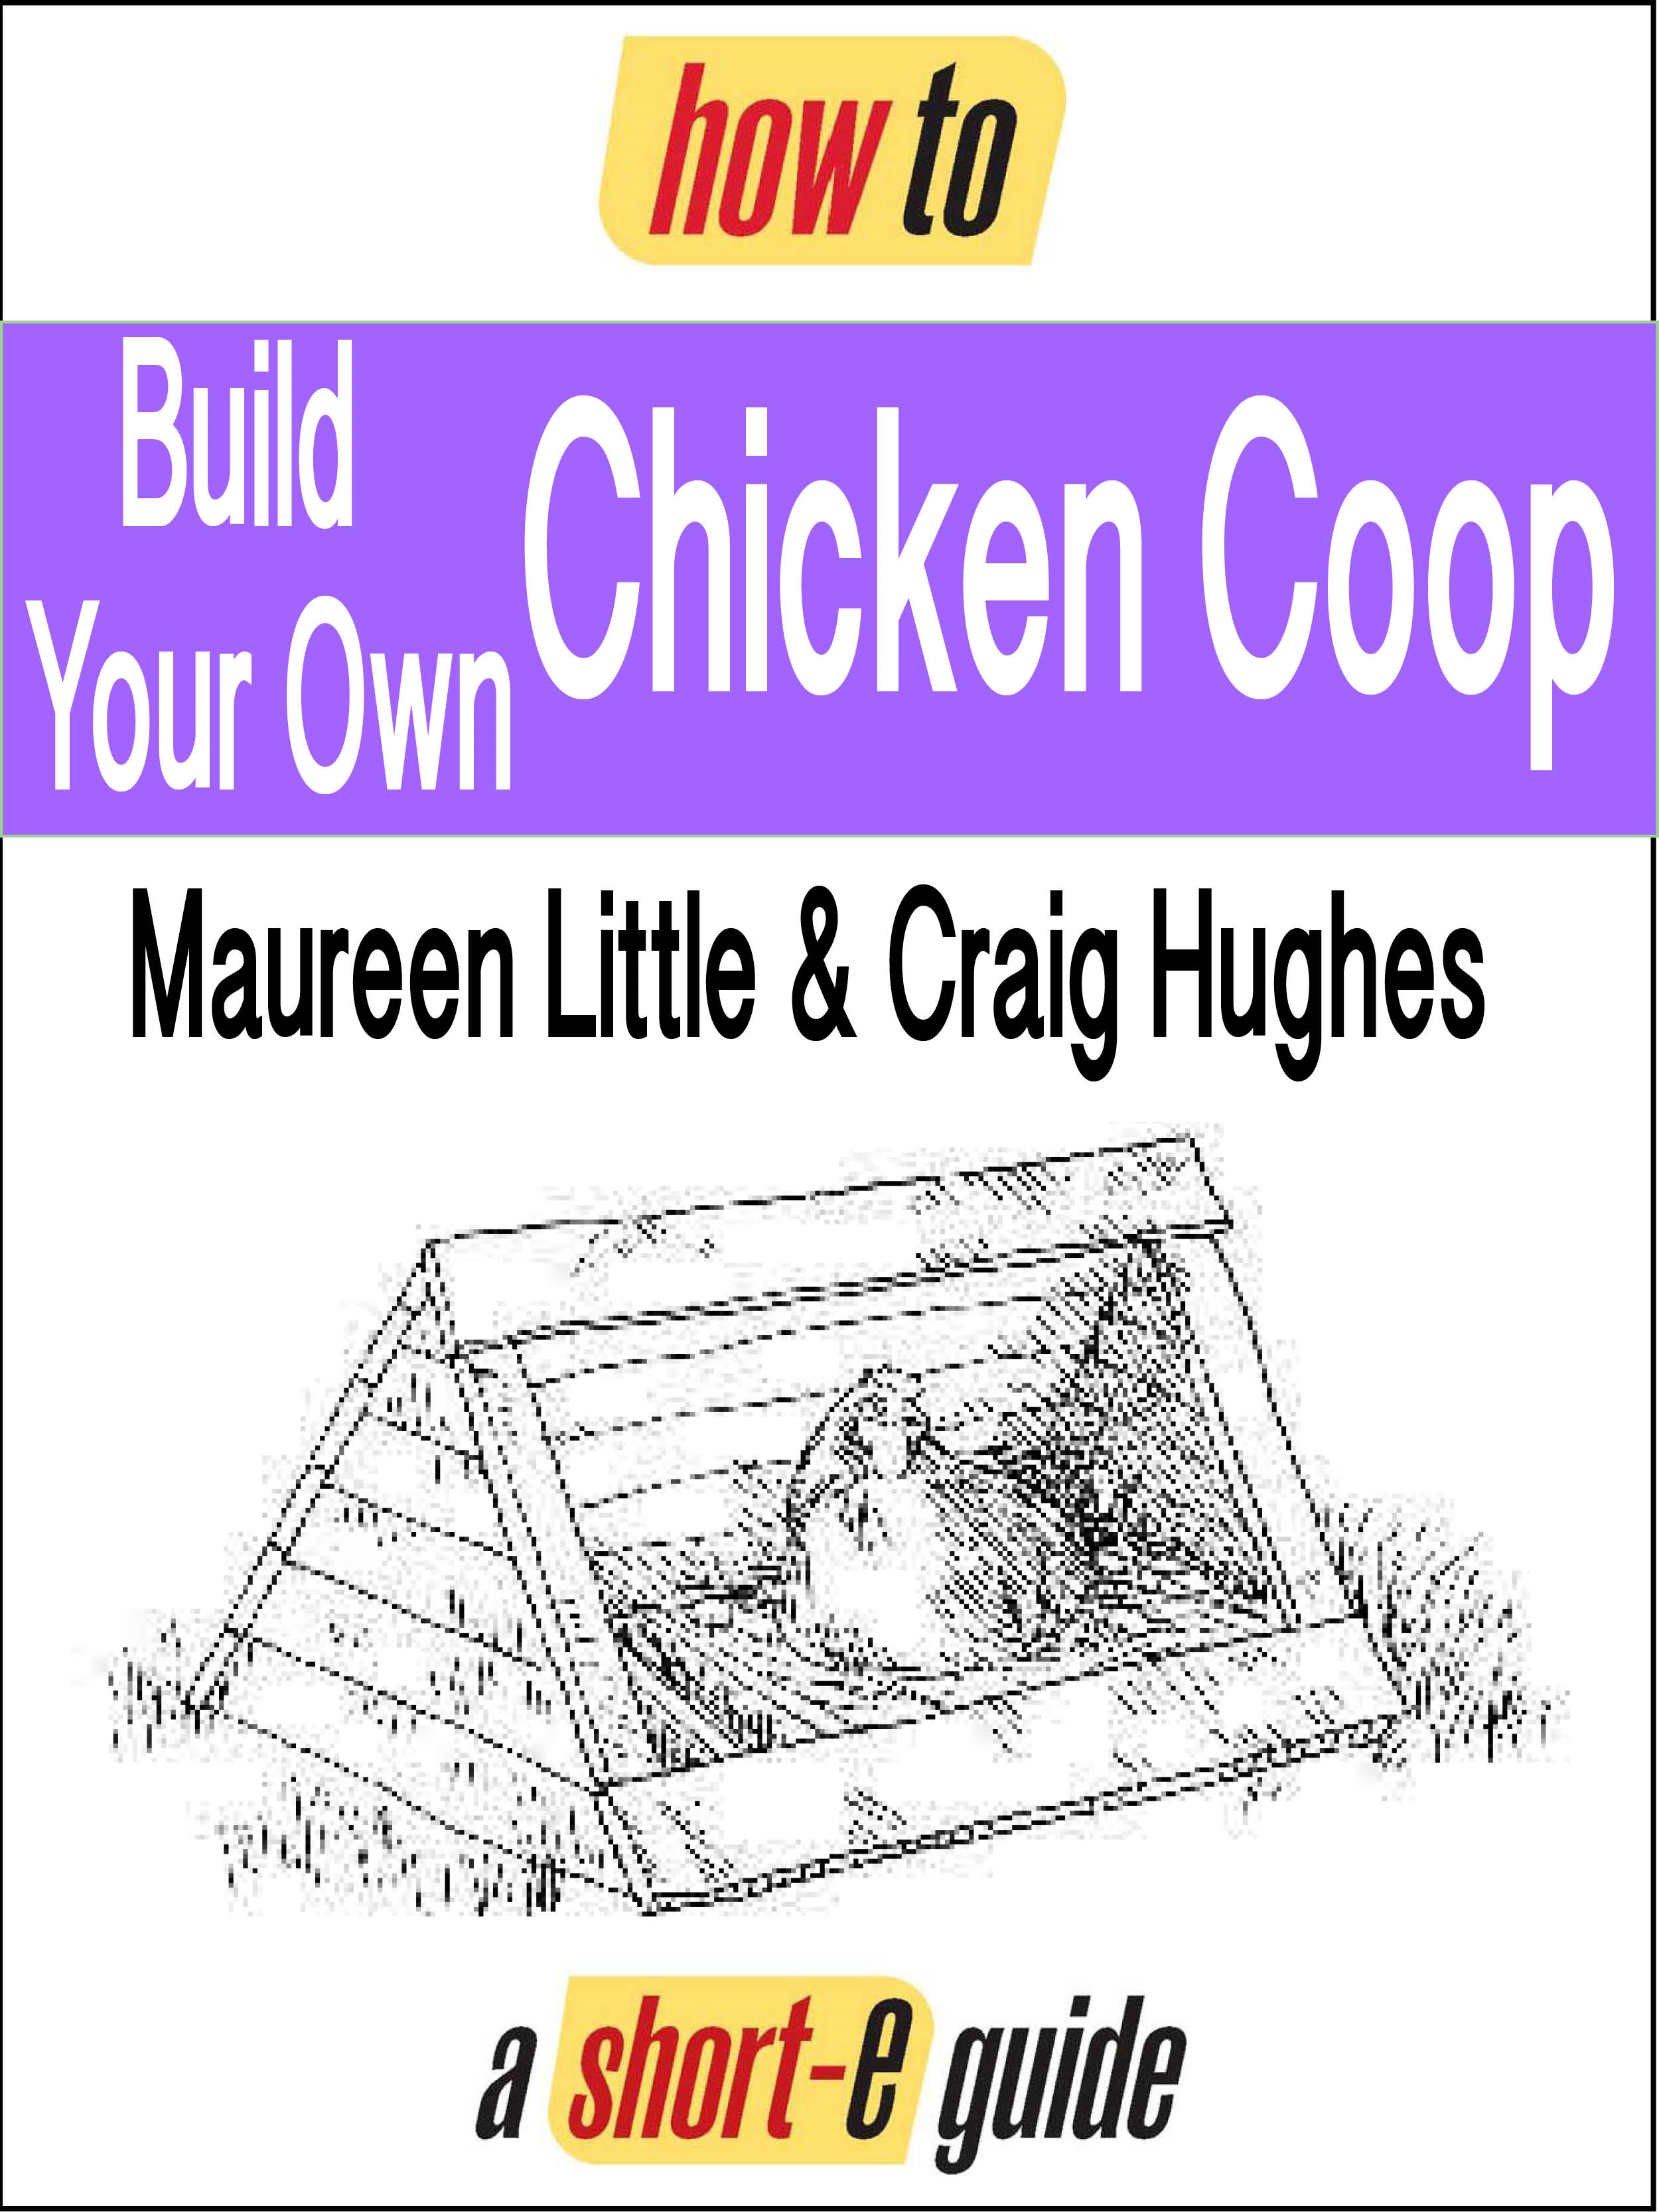 How to Build Your Own Chicken Coop (Short-e Guide)